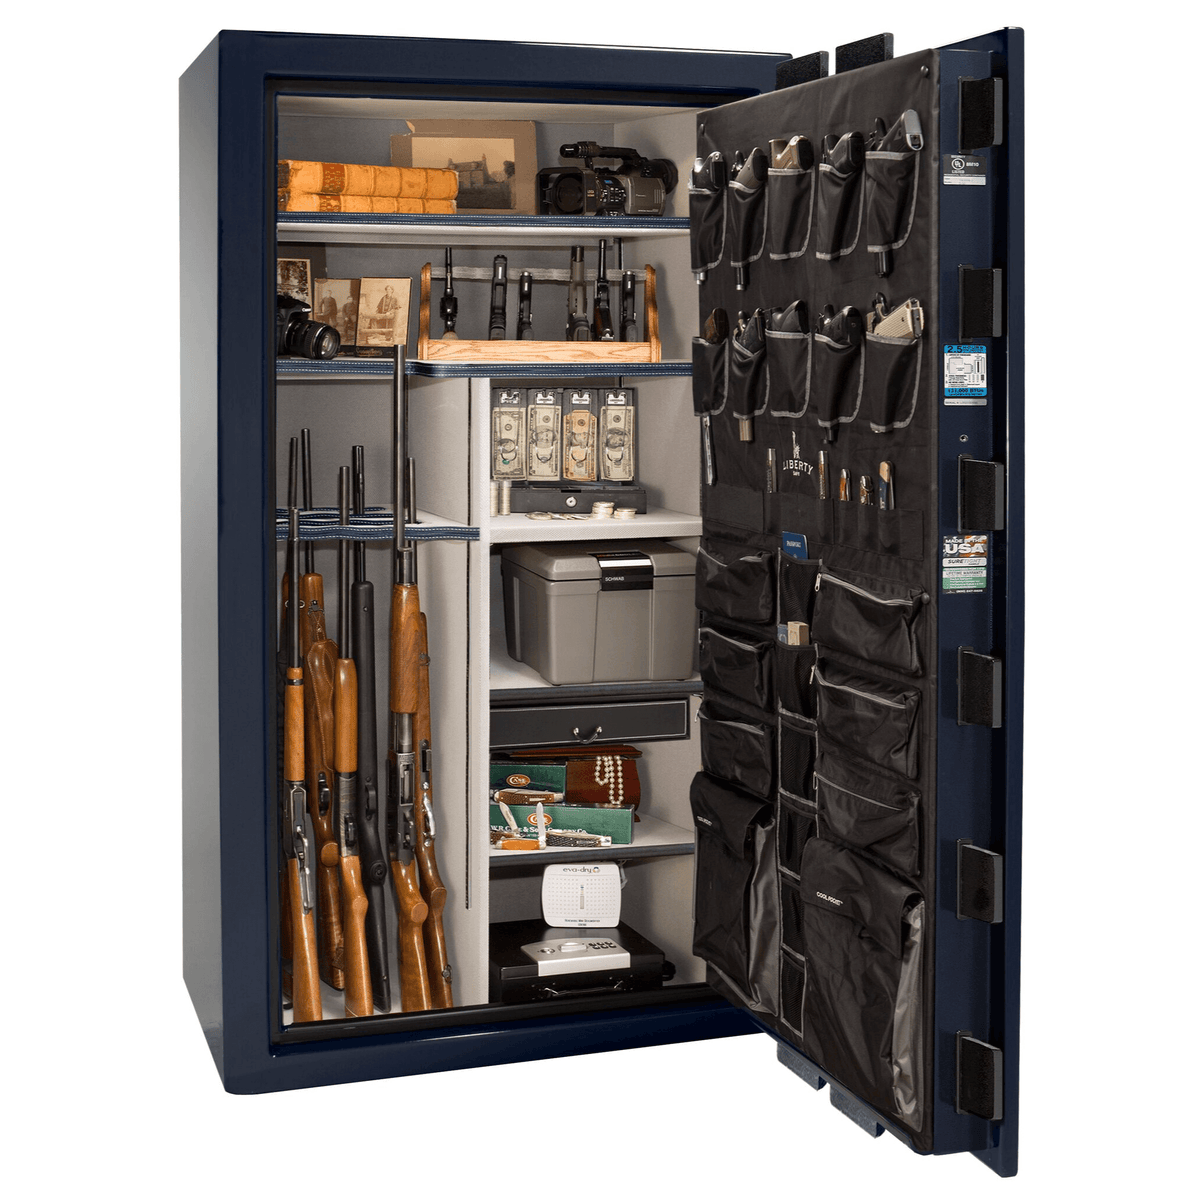 "Magnum | 50 | Level 8 Security | 150 Minute Fire Protection | Blue Gloss | Chrome Electronic Lock | 72.5""(H) x 42""(W) x 32""(D)"